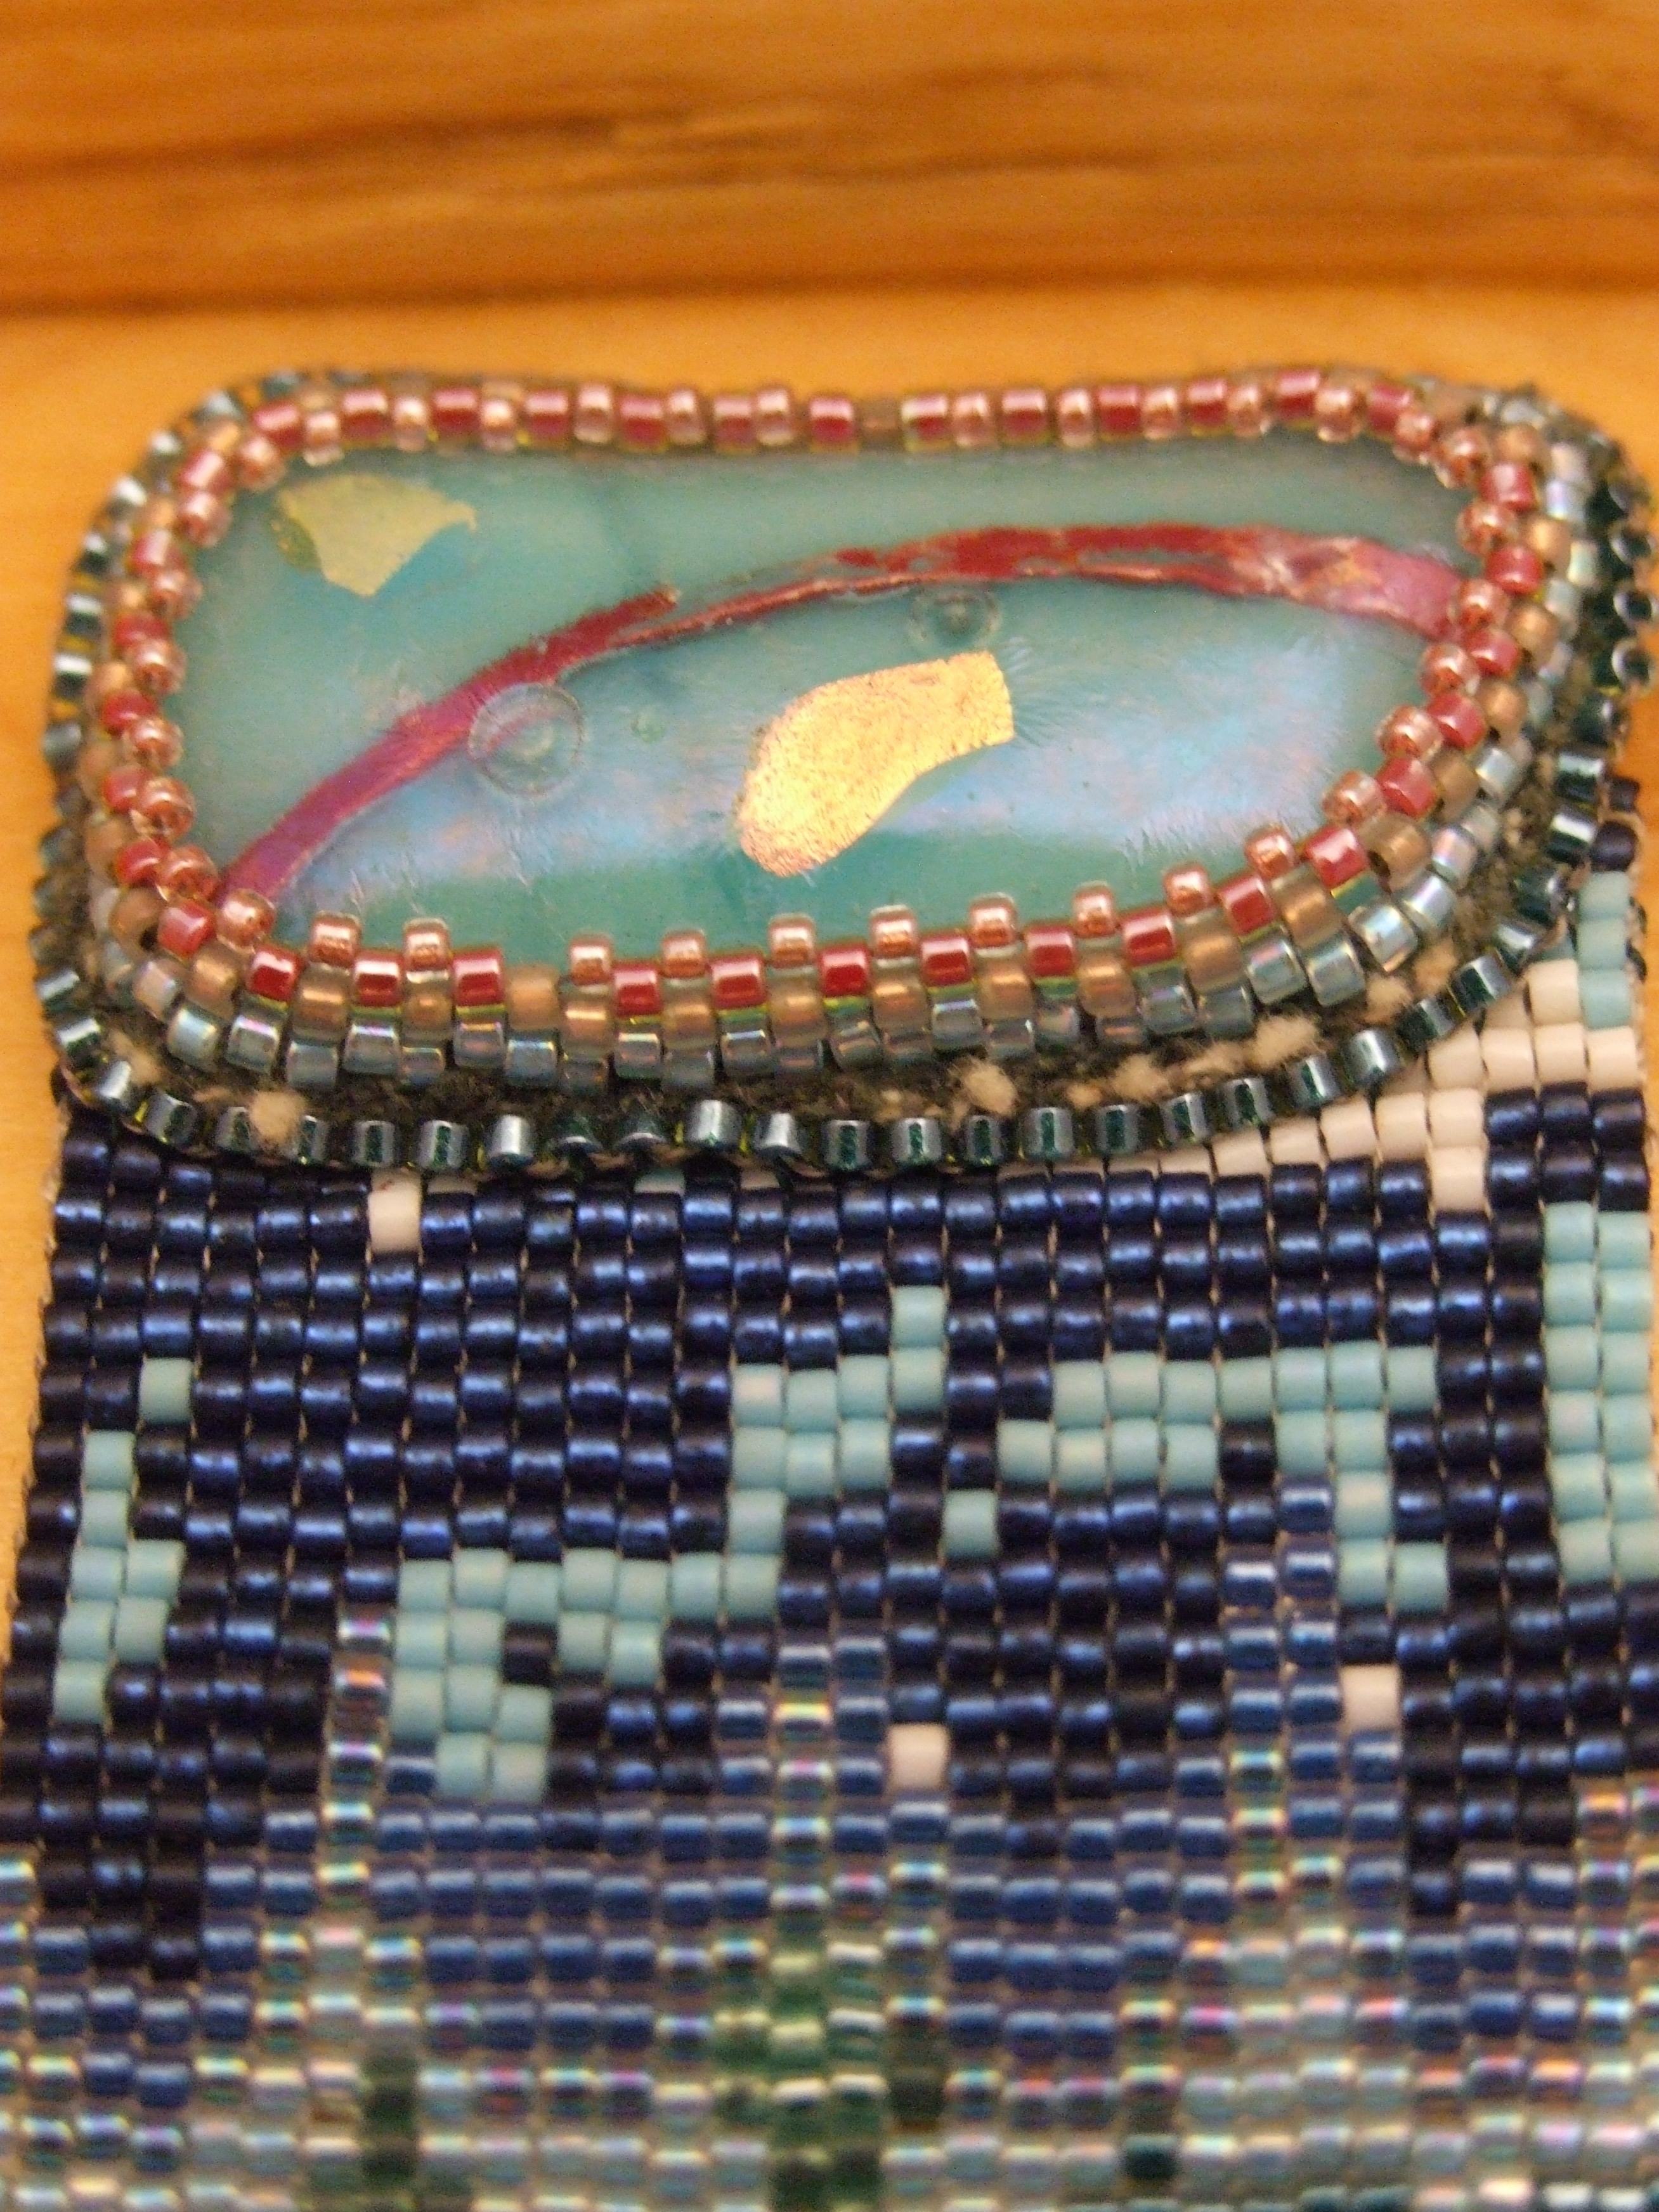 Close-up of Under the Sea loom woven bracelet by Lynn Smythe featuring one of her fused glass cabochons with captured copper embellishment.